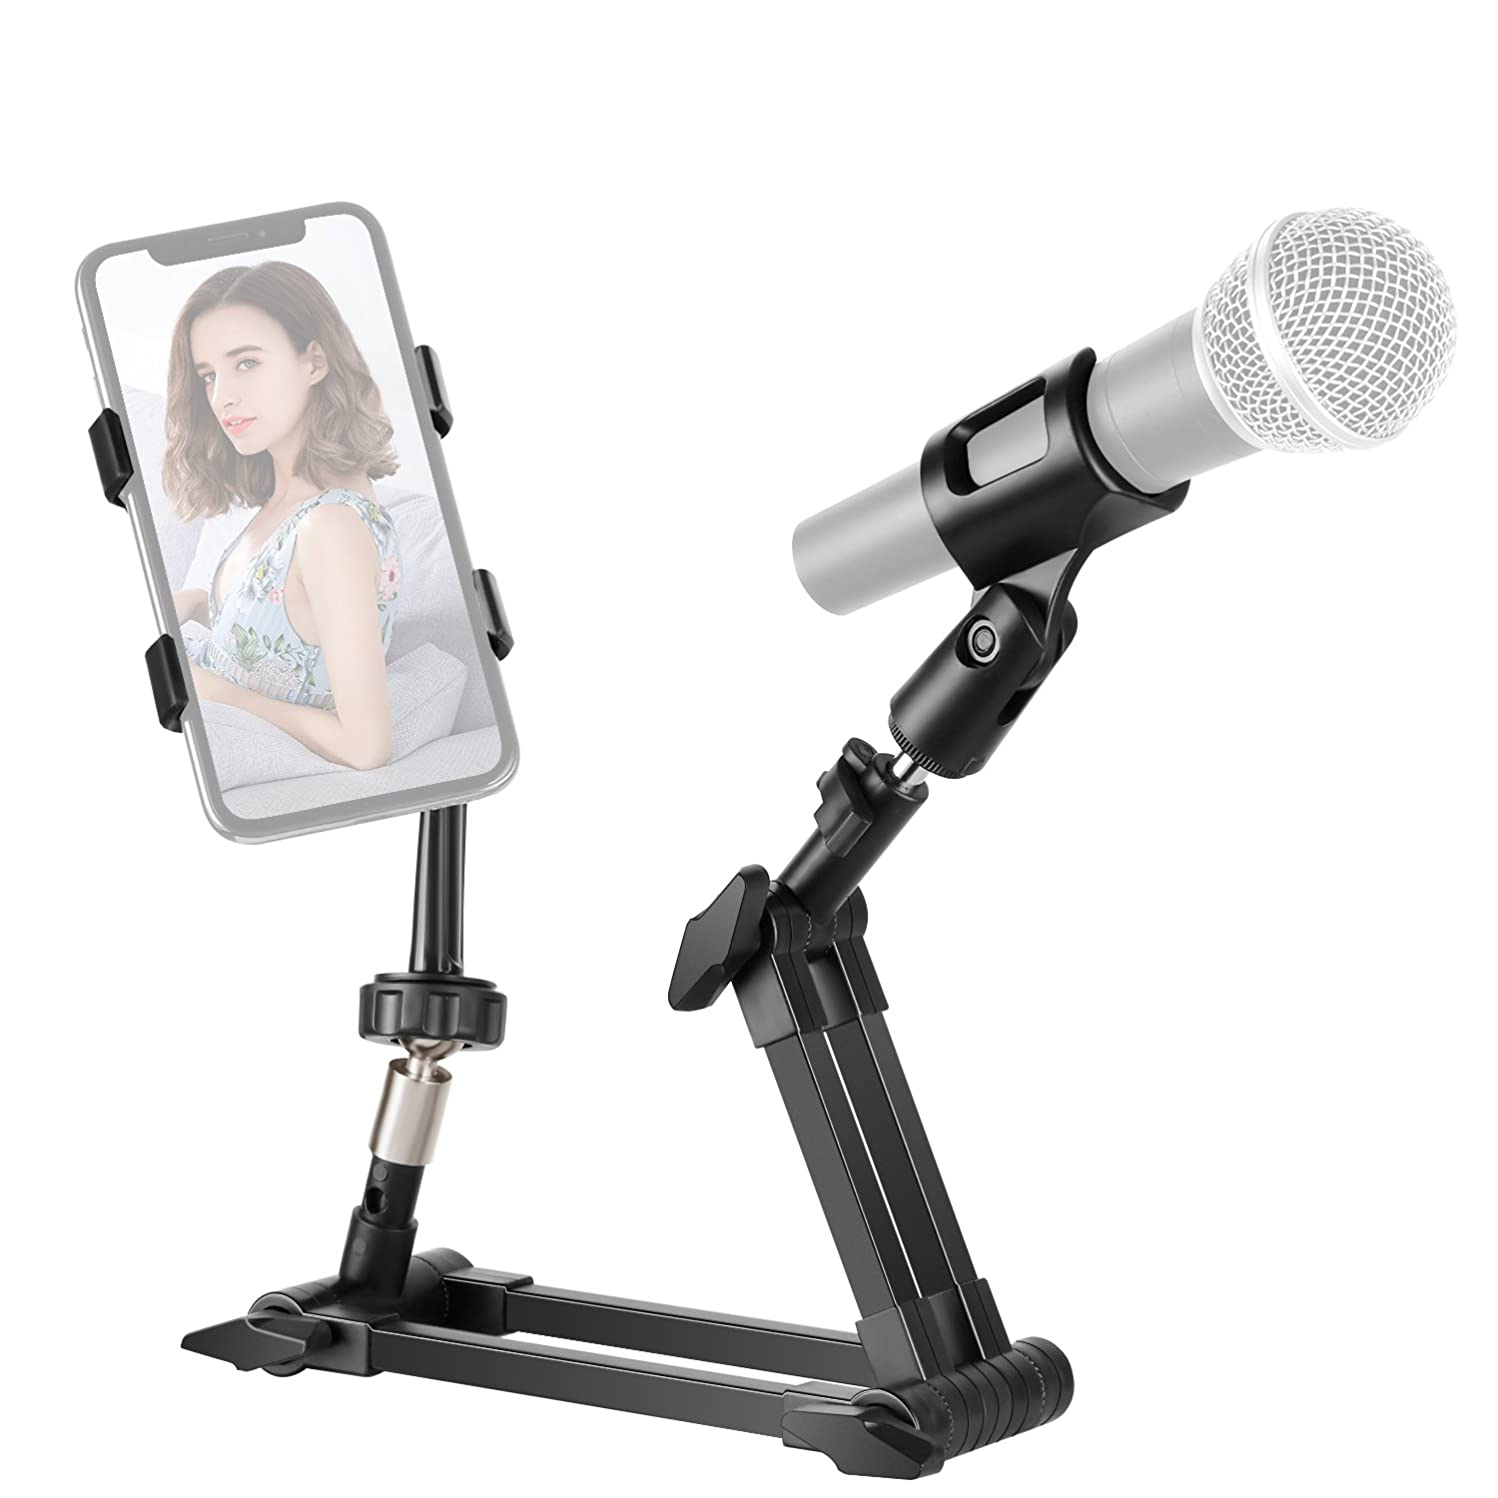 Neewer Table Top Foldable Live Broadcast Stabilizer with Mic Holder and Phone Clamp Detachable and Rotatable Compatible with Most Smartphones and Microphones for Recording(Black)